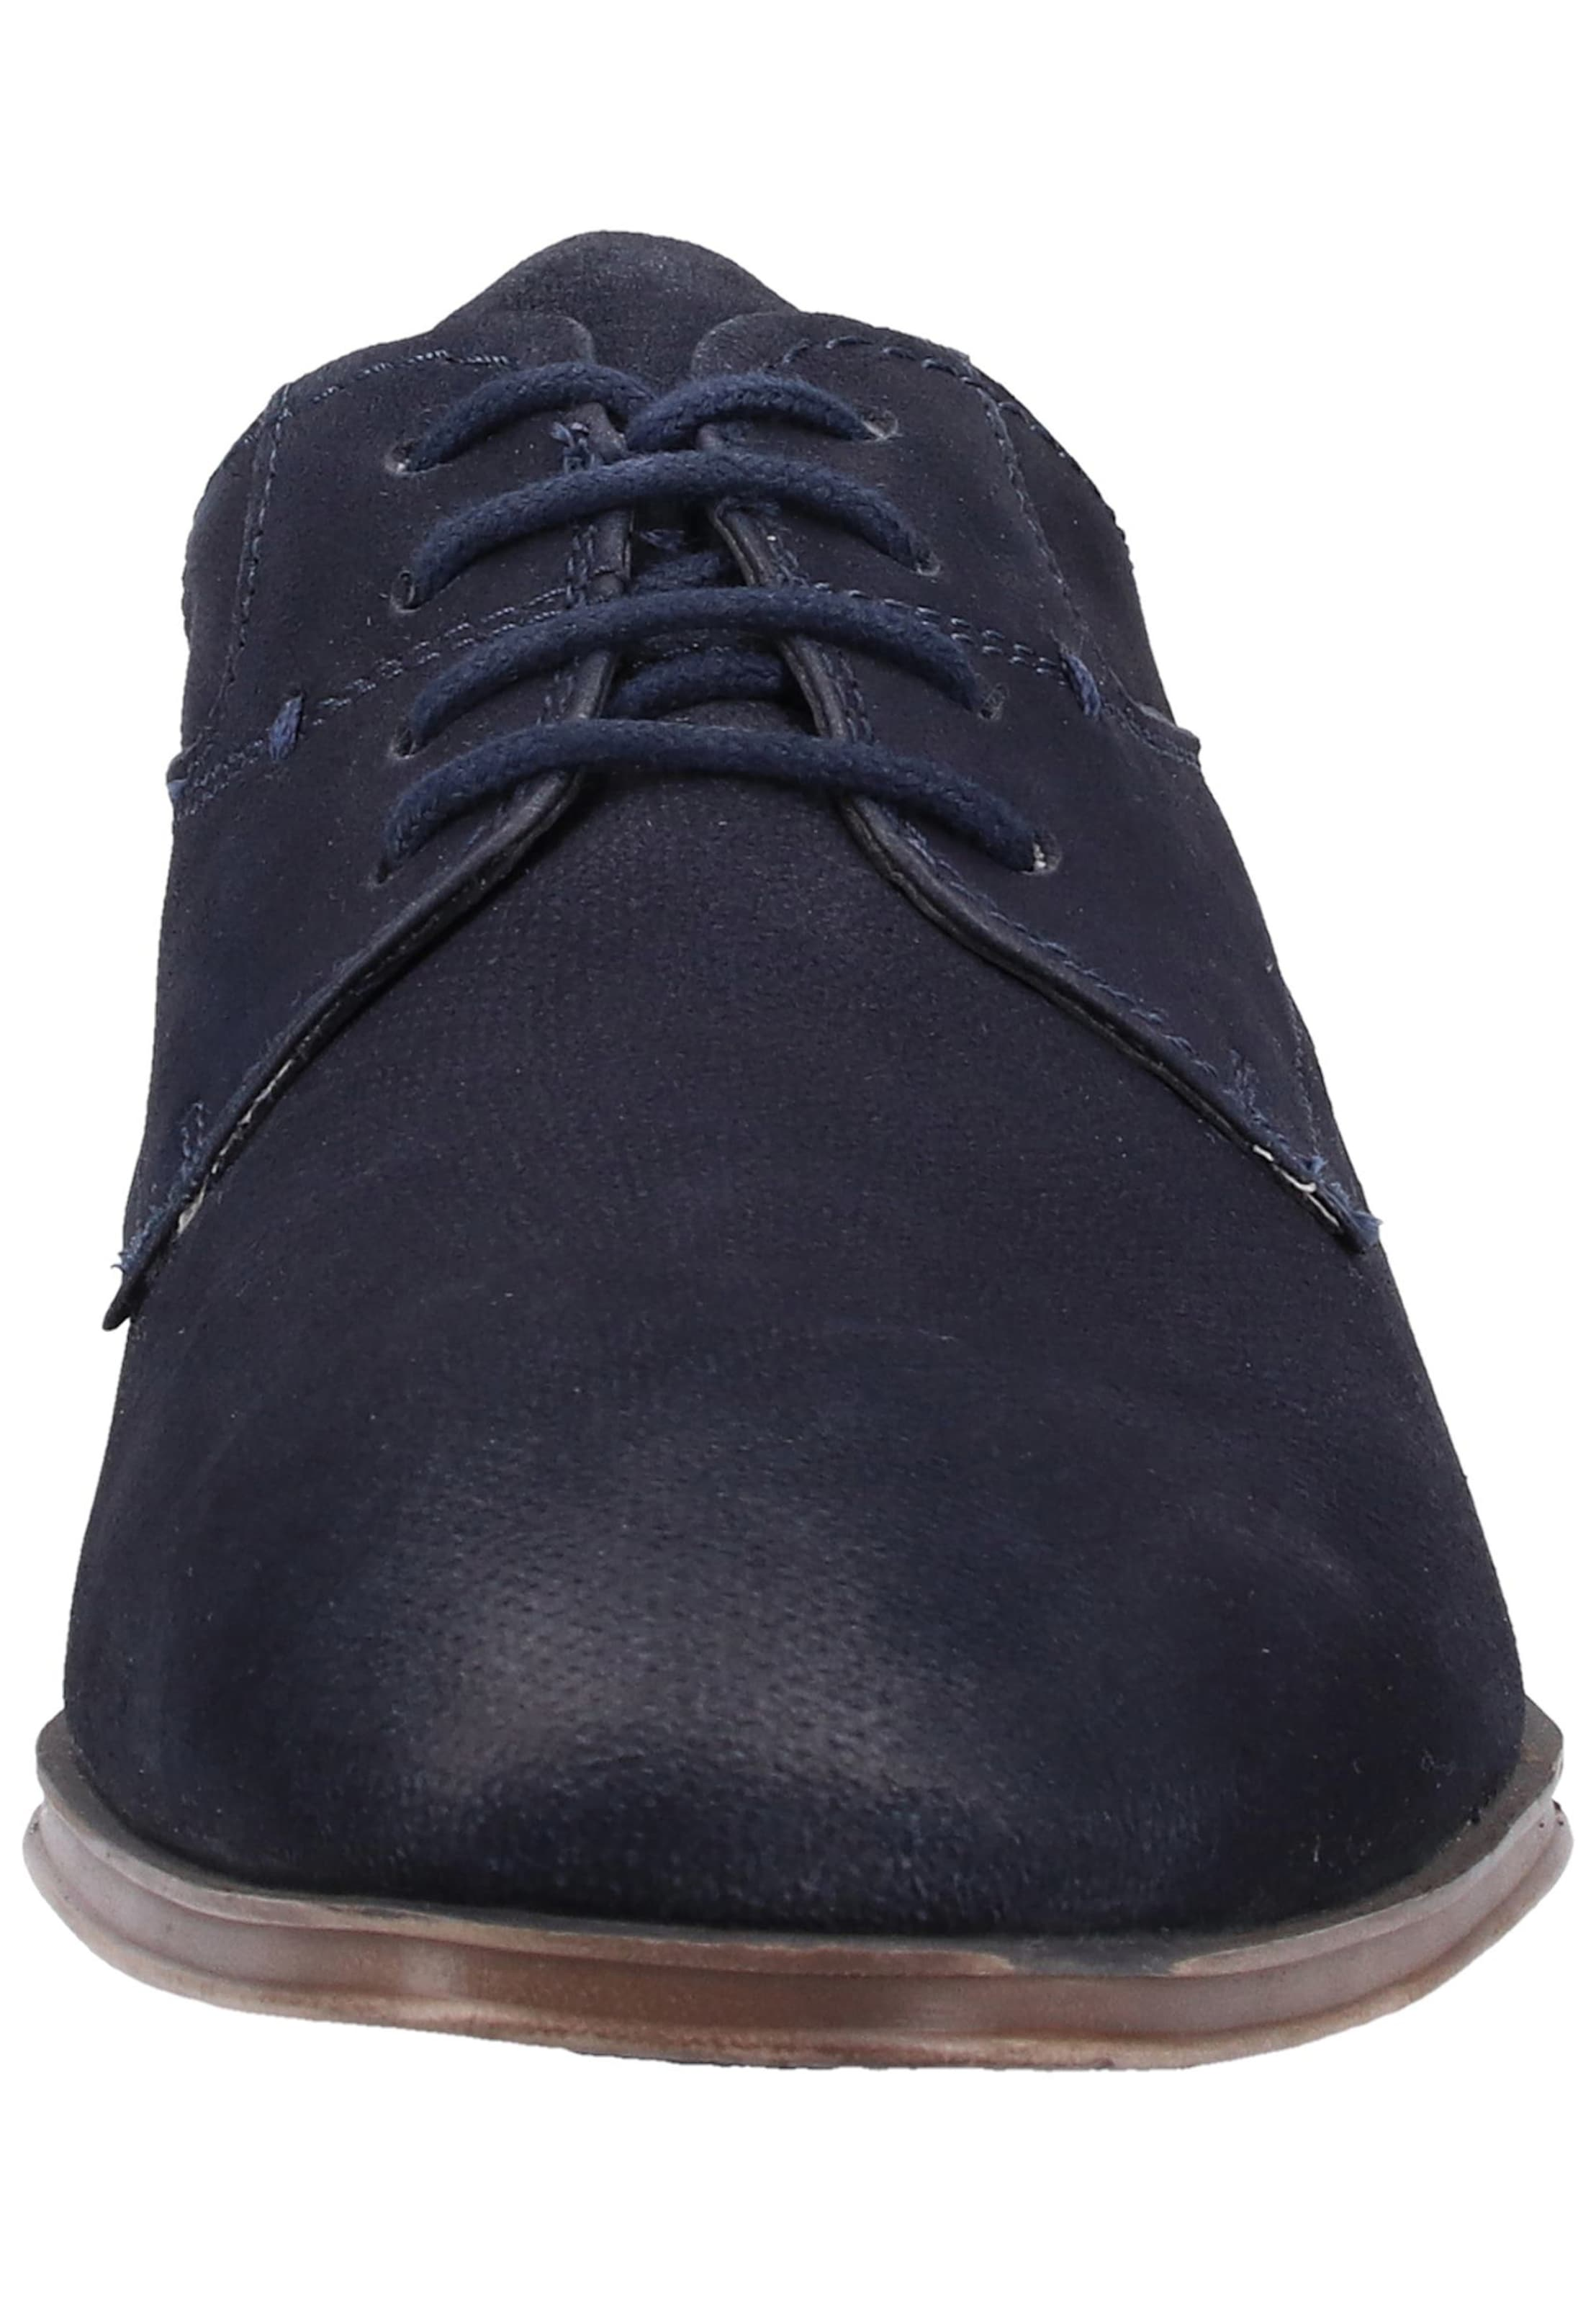 Halbschuhe Navy In S Label oliver Red 0wPkXO8n